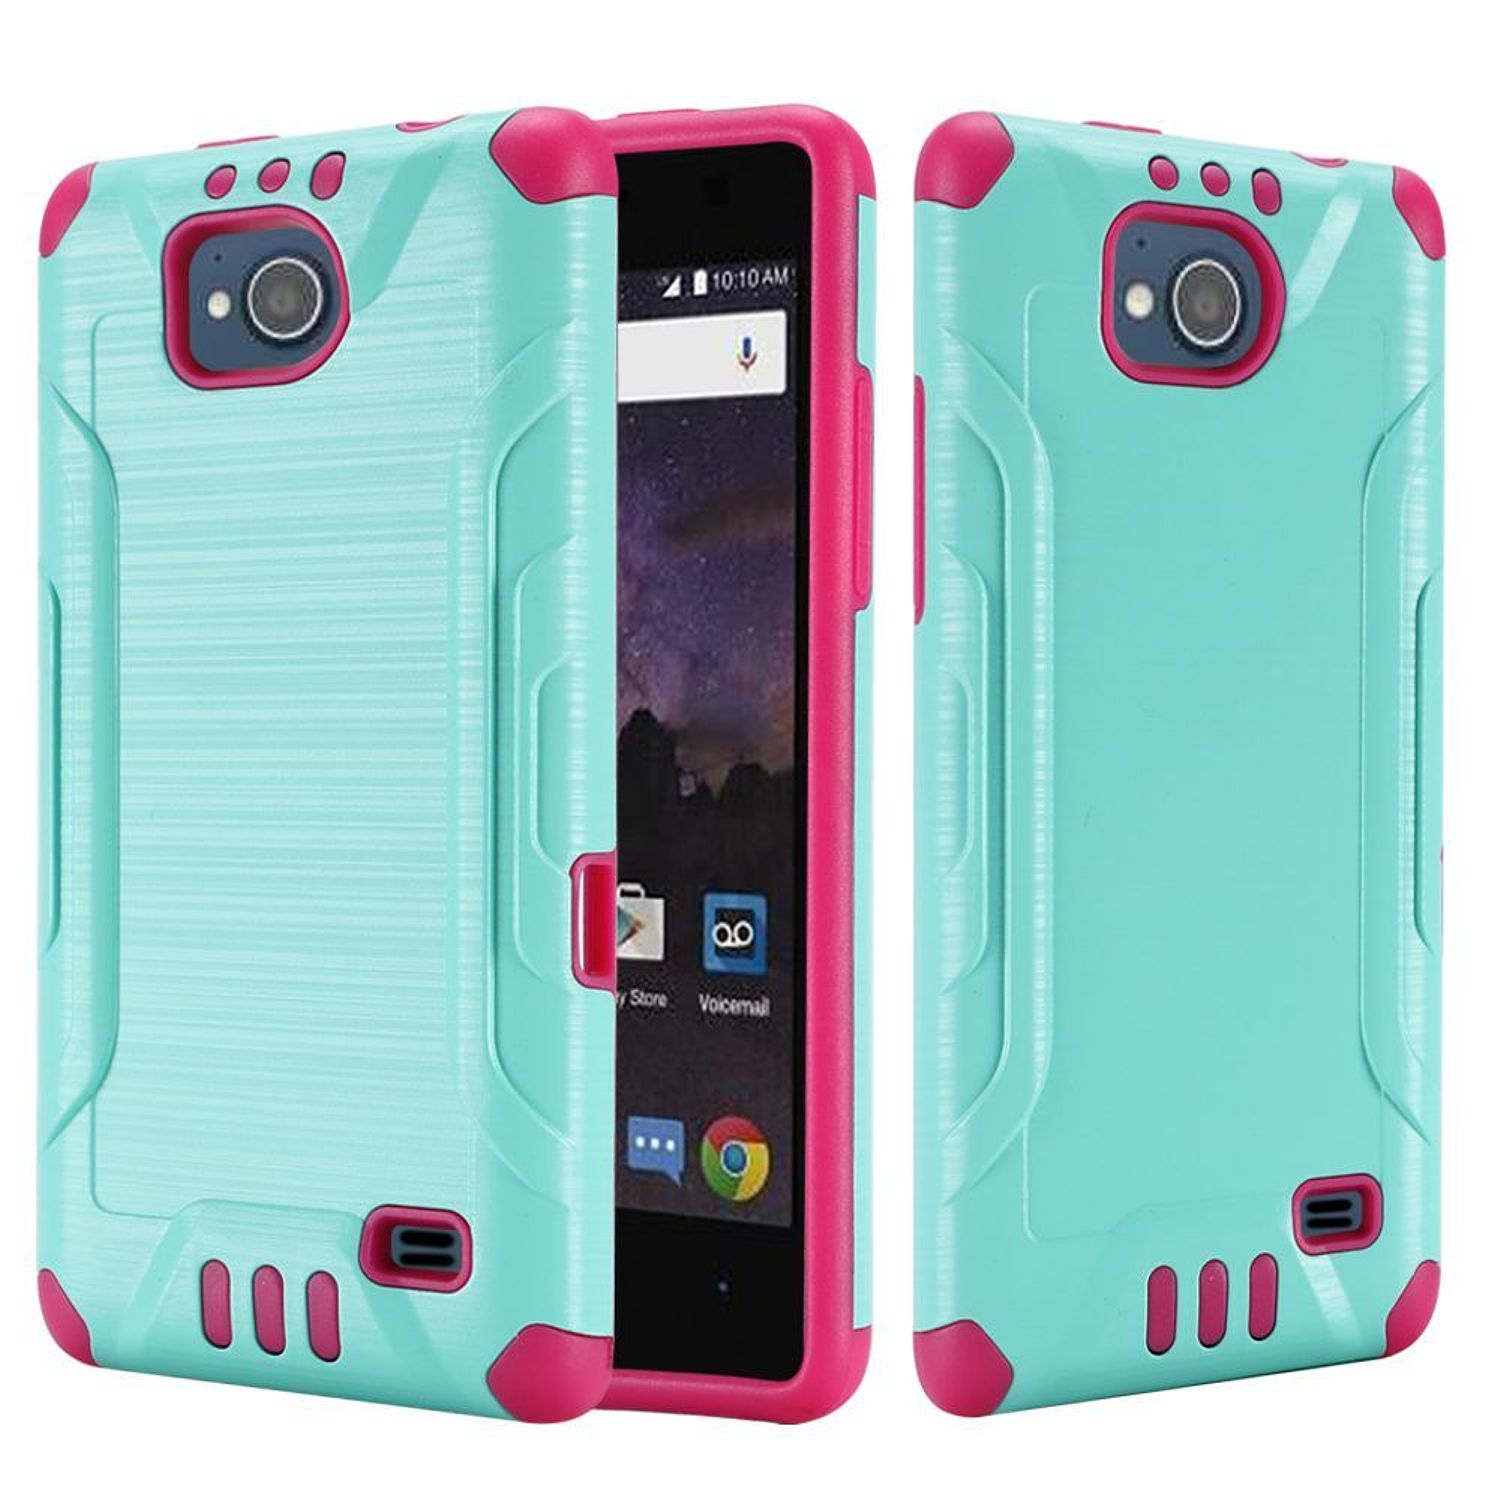 ZTE Majesty Pro LTE/Tempo Case, by HR Wireless Dual Layer Hybrid Rubber Coated Hard Plastic/Soft Silicone Case Cover For ZTE Majesty Pro LTE Z799VL/Tempo, Teal/Hot Pink